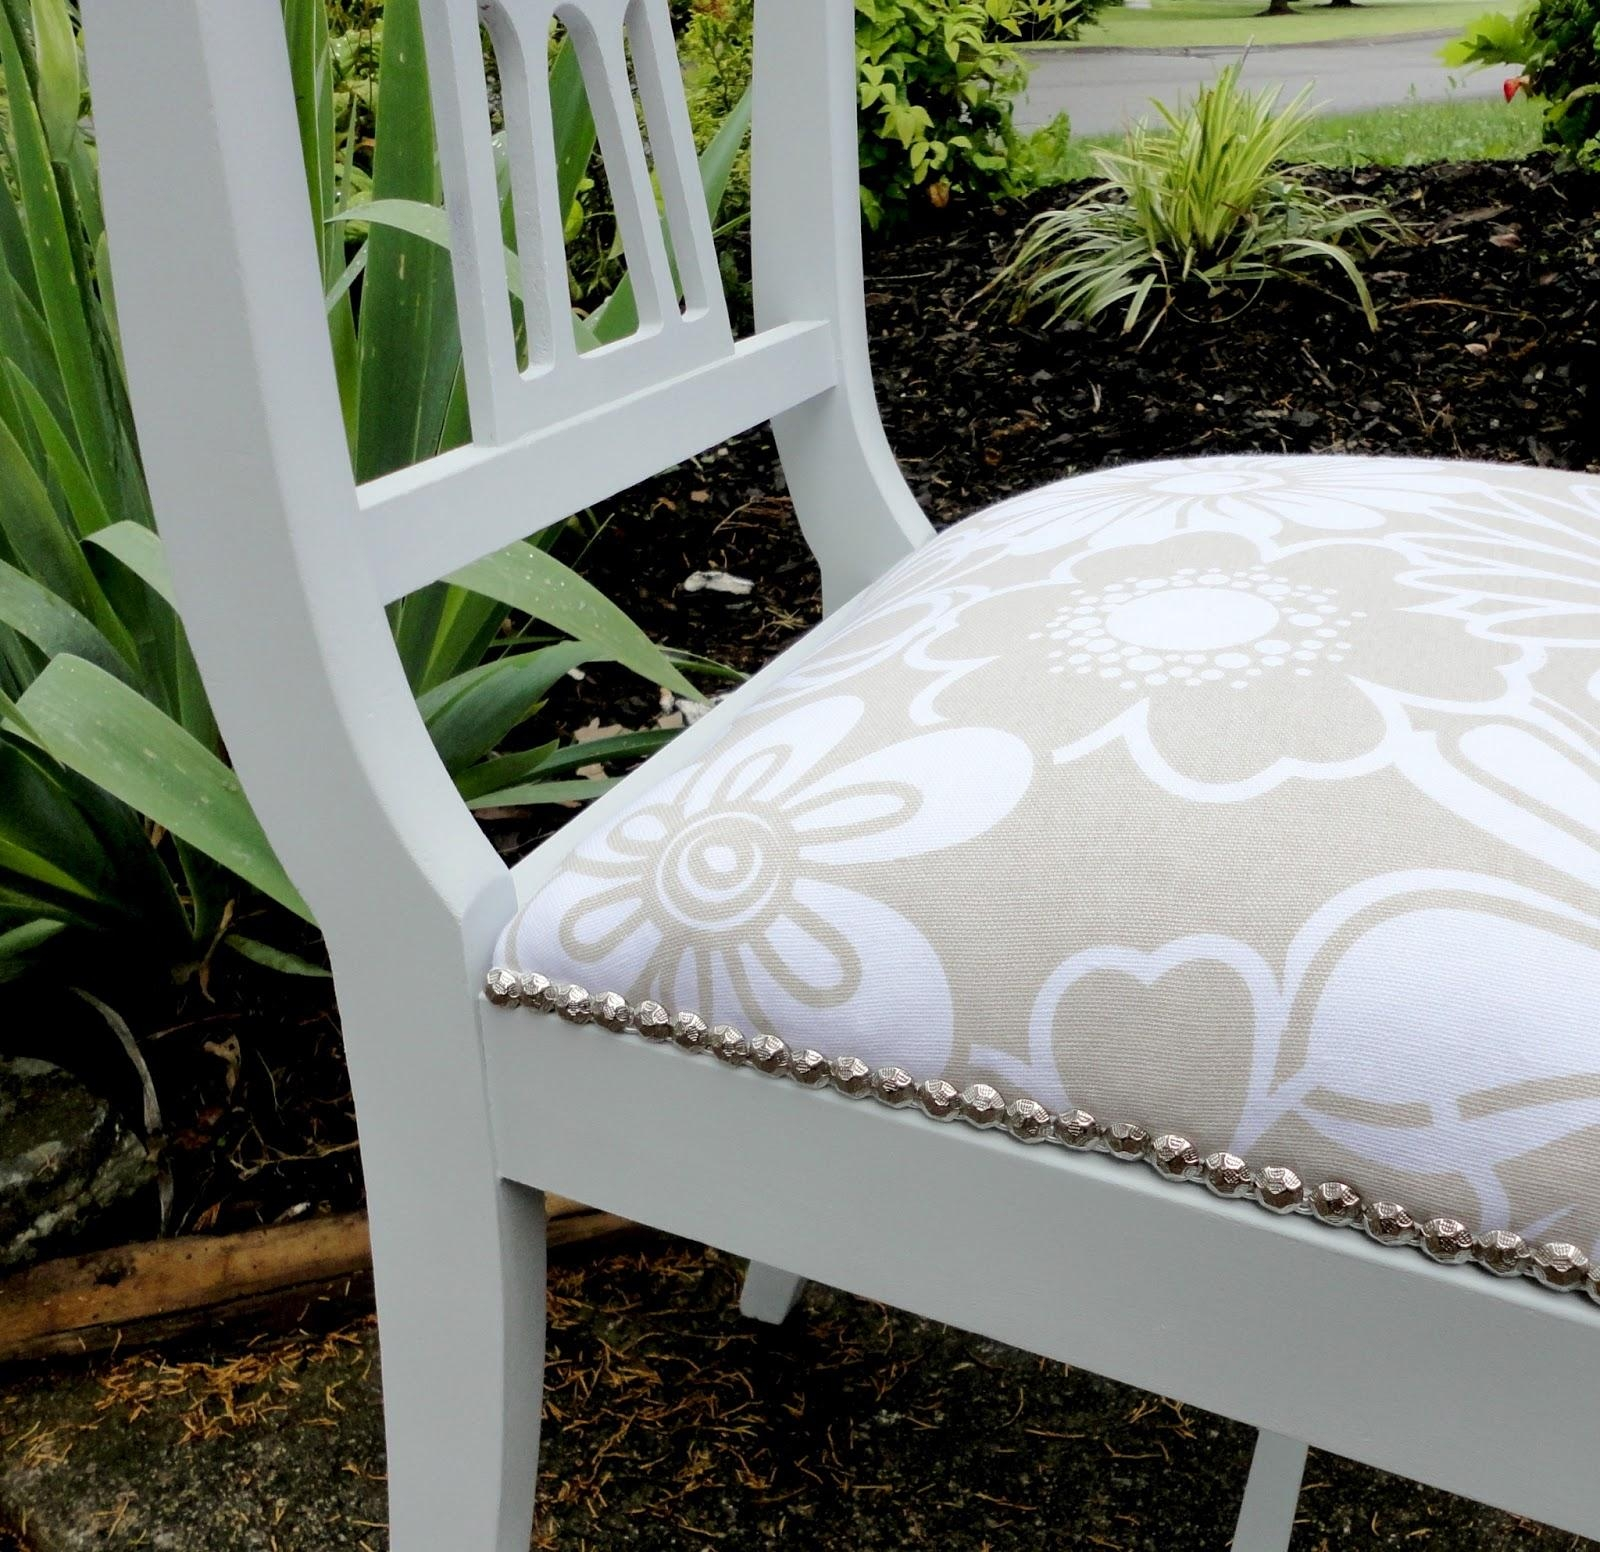 Livelovediy: How To Reupholster A Chair Inside Reupholster Sofas Cushions (Image 6 of 20)